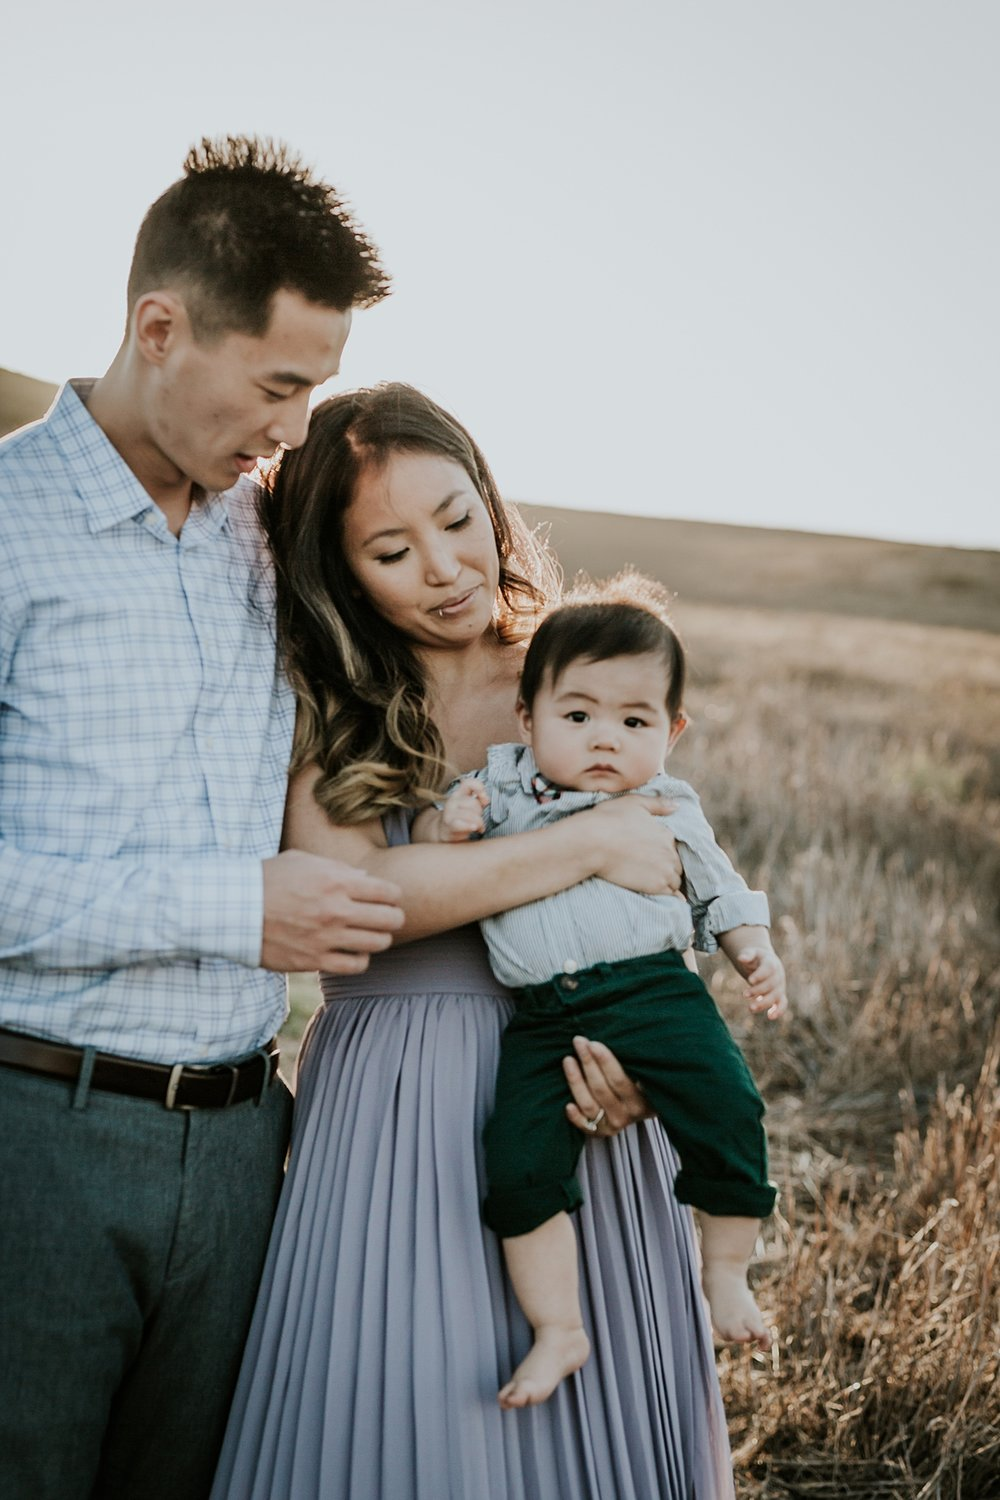 Orange County family photographer. Candid photo of of family of three during lifestyle family photo shoot at Quail Hill Trailhead in California